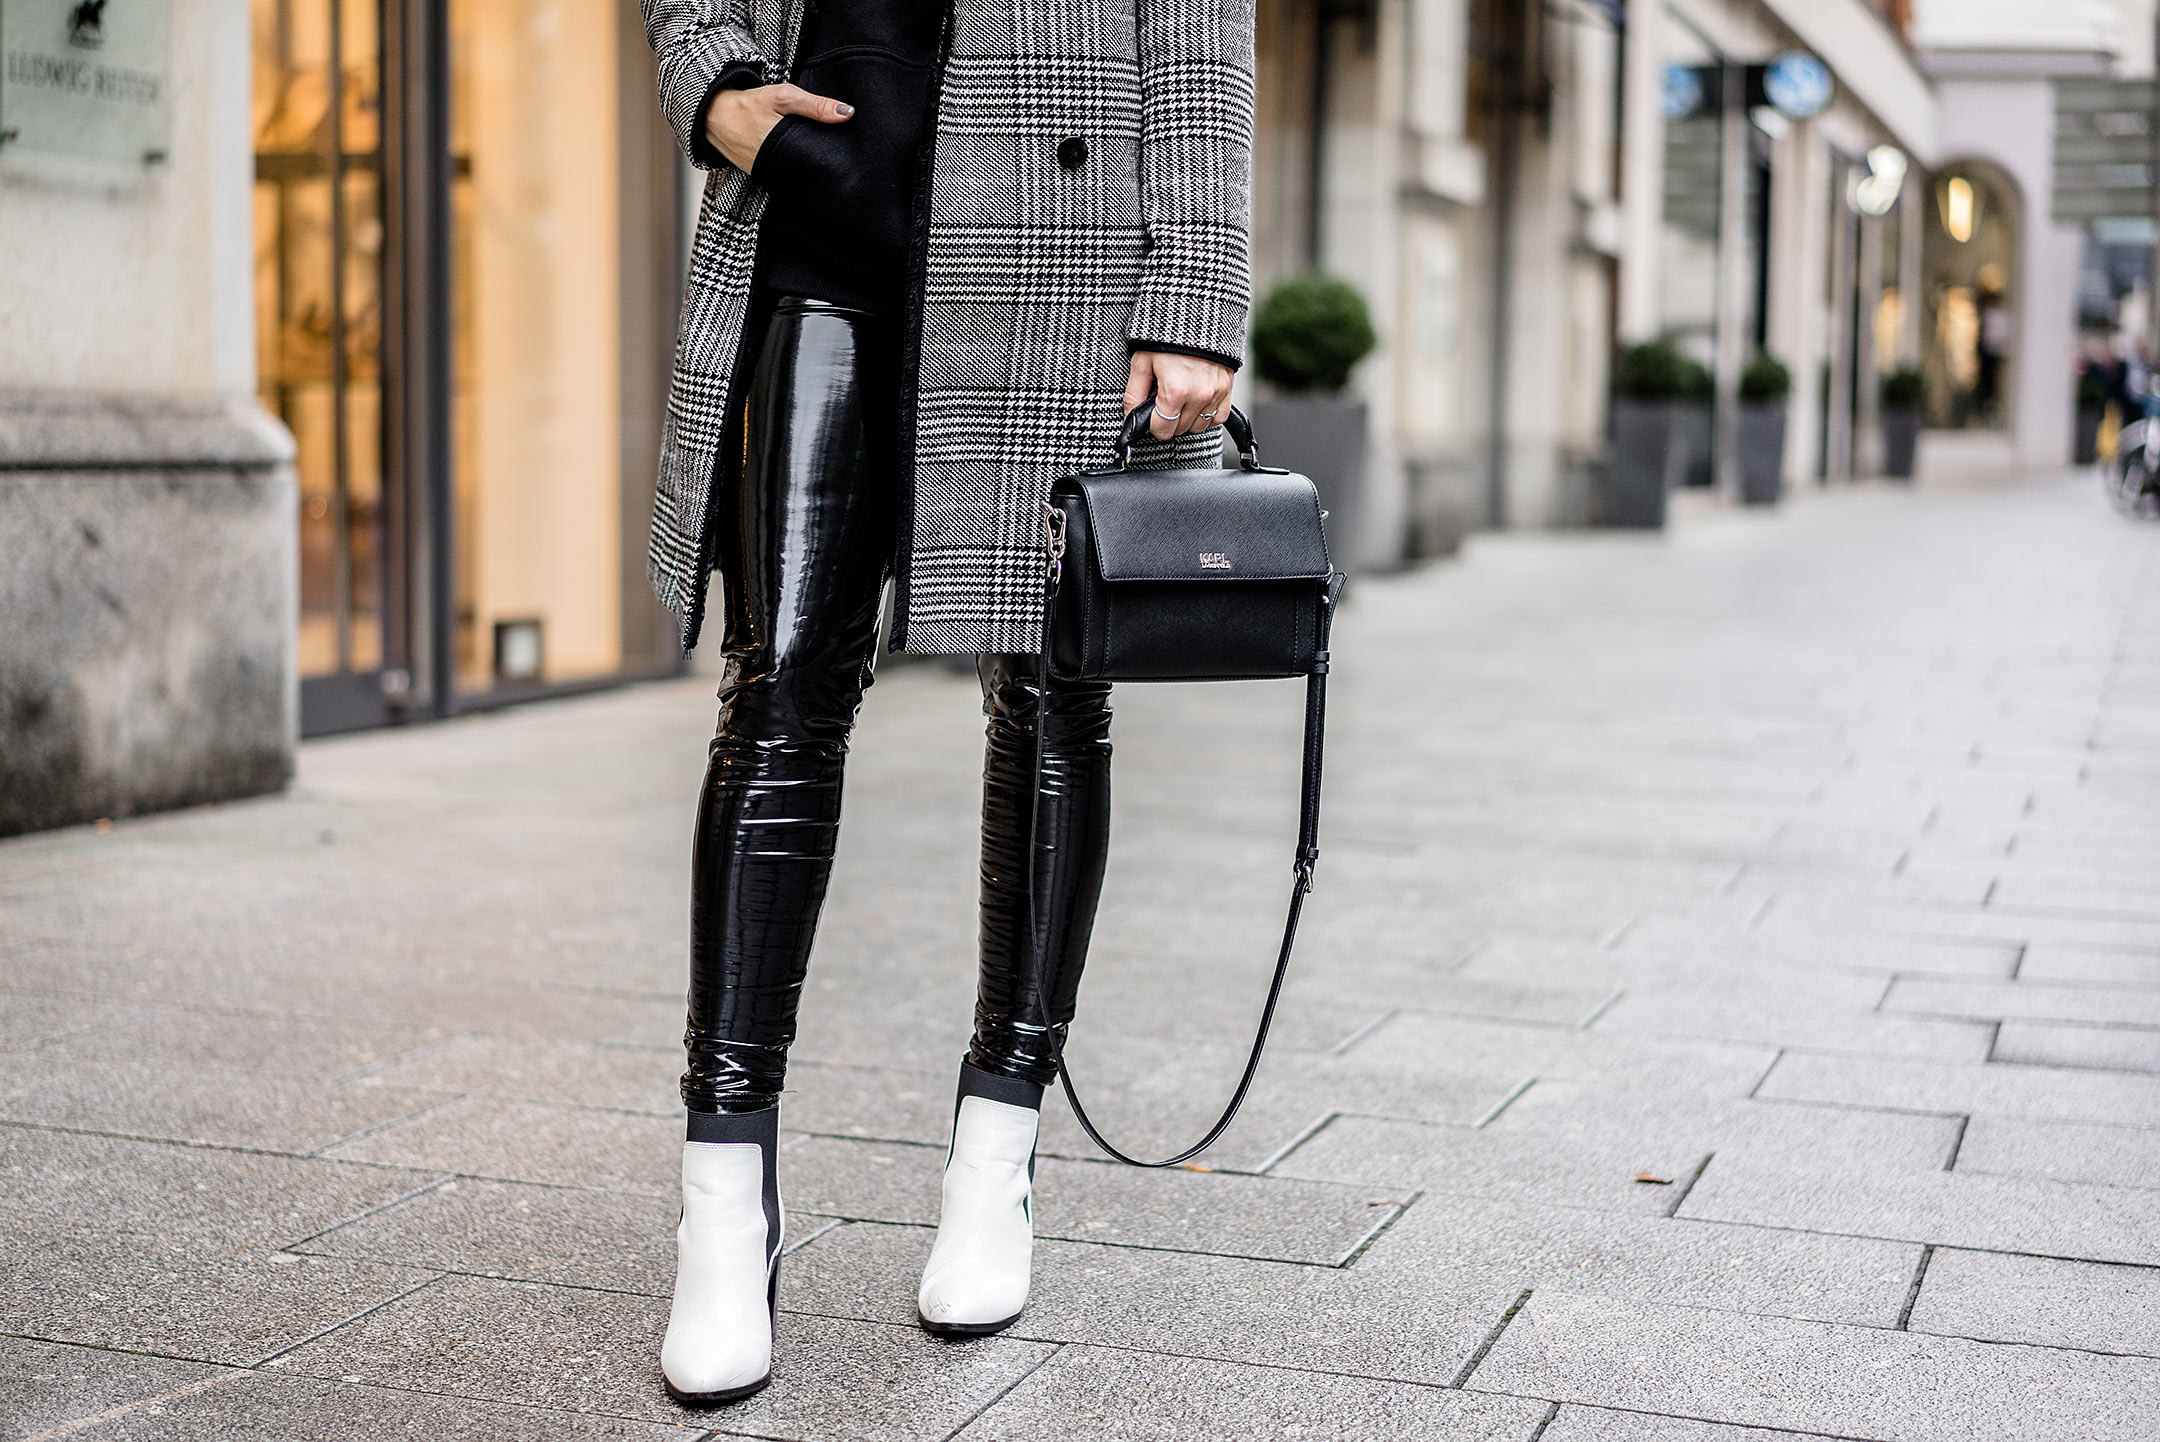 Vinyl Pants Outfit Boots weiss Fashion Blog Karl Lagerfeld Tasche Sunnyinga